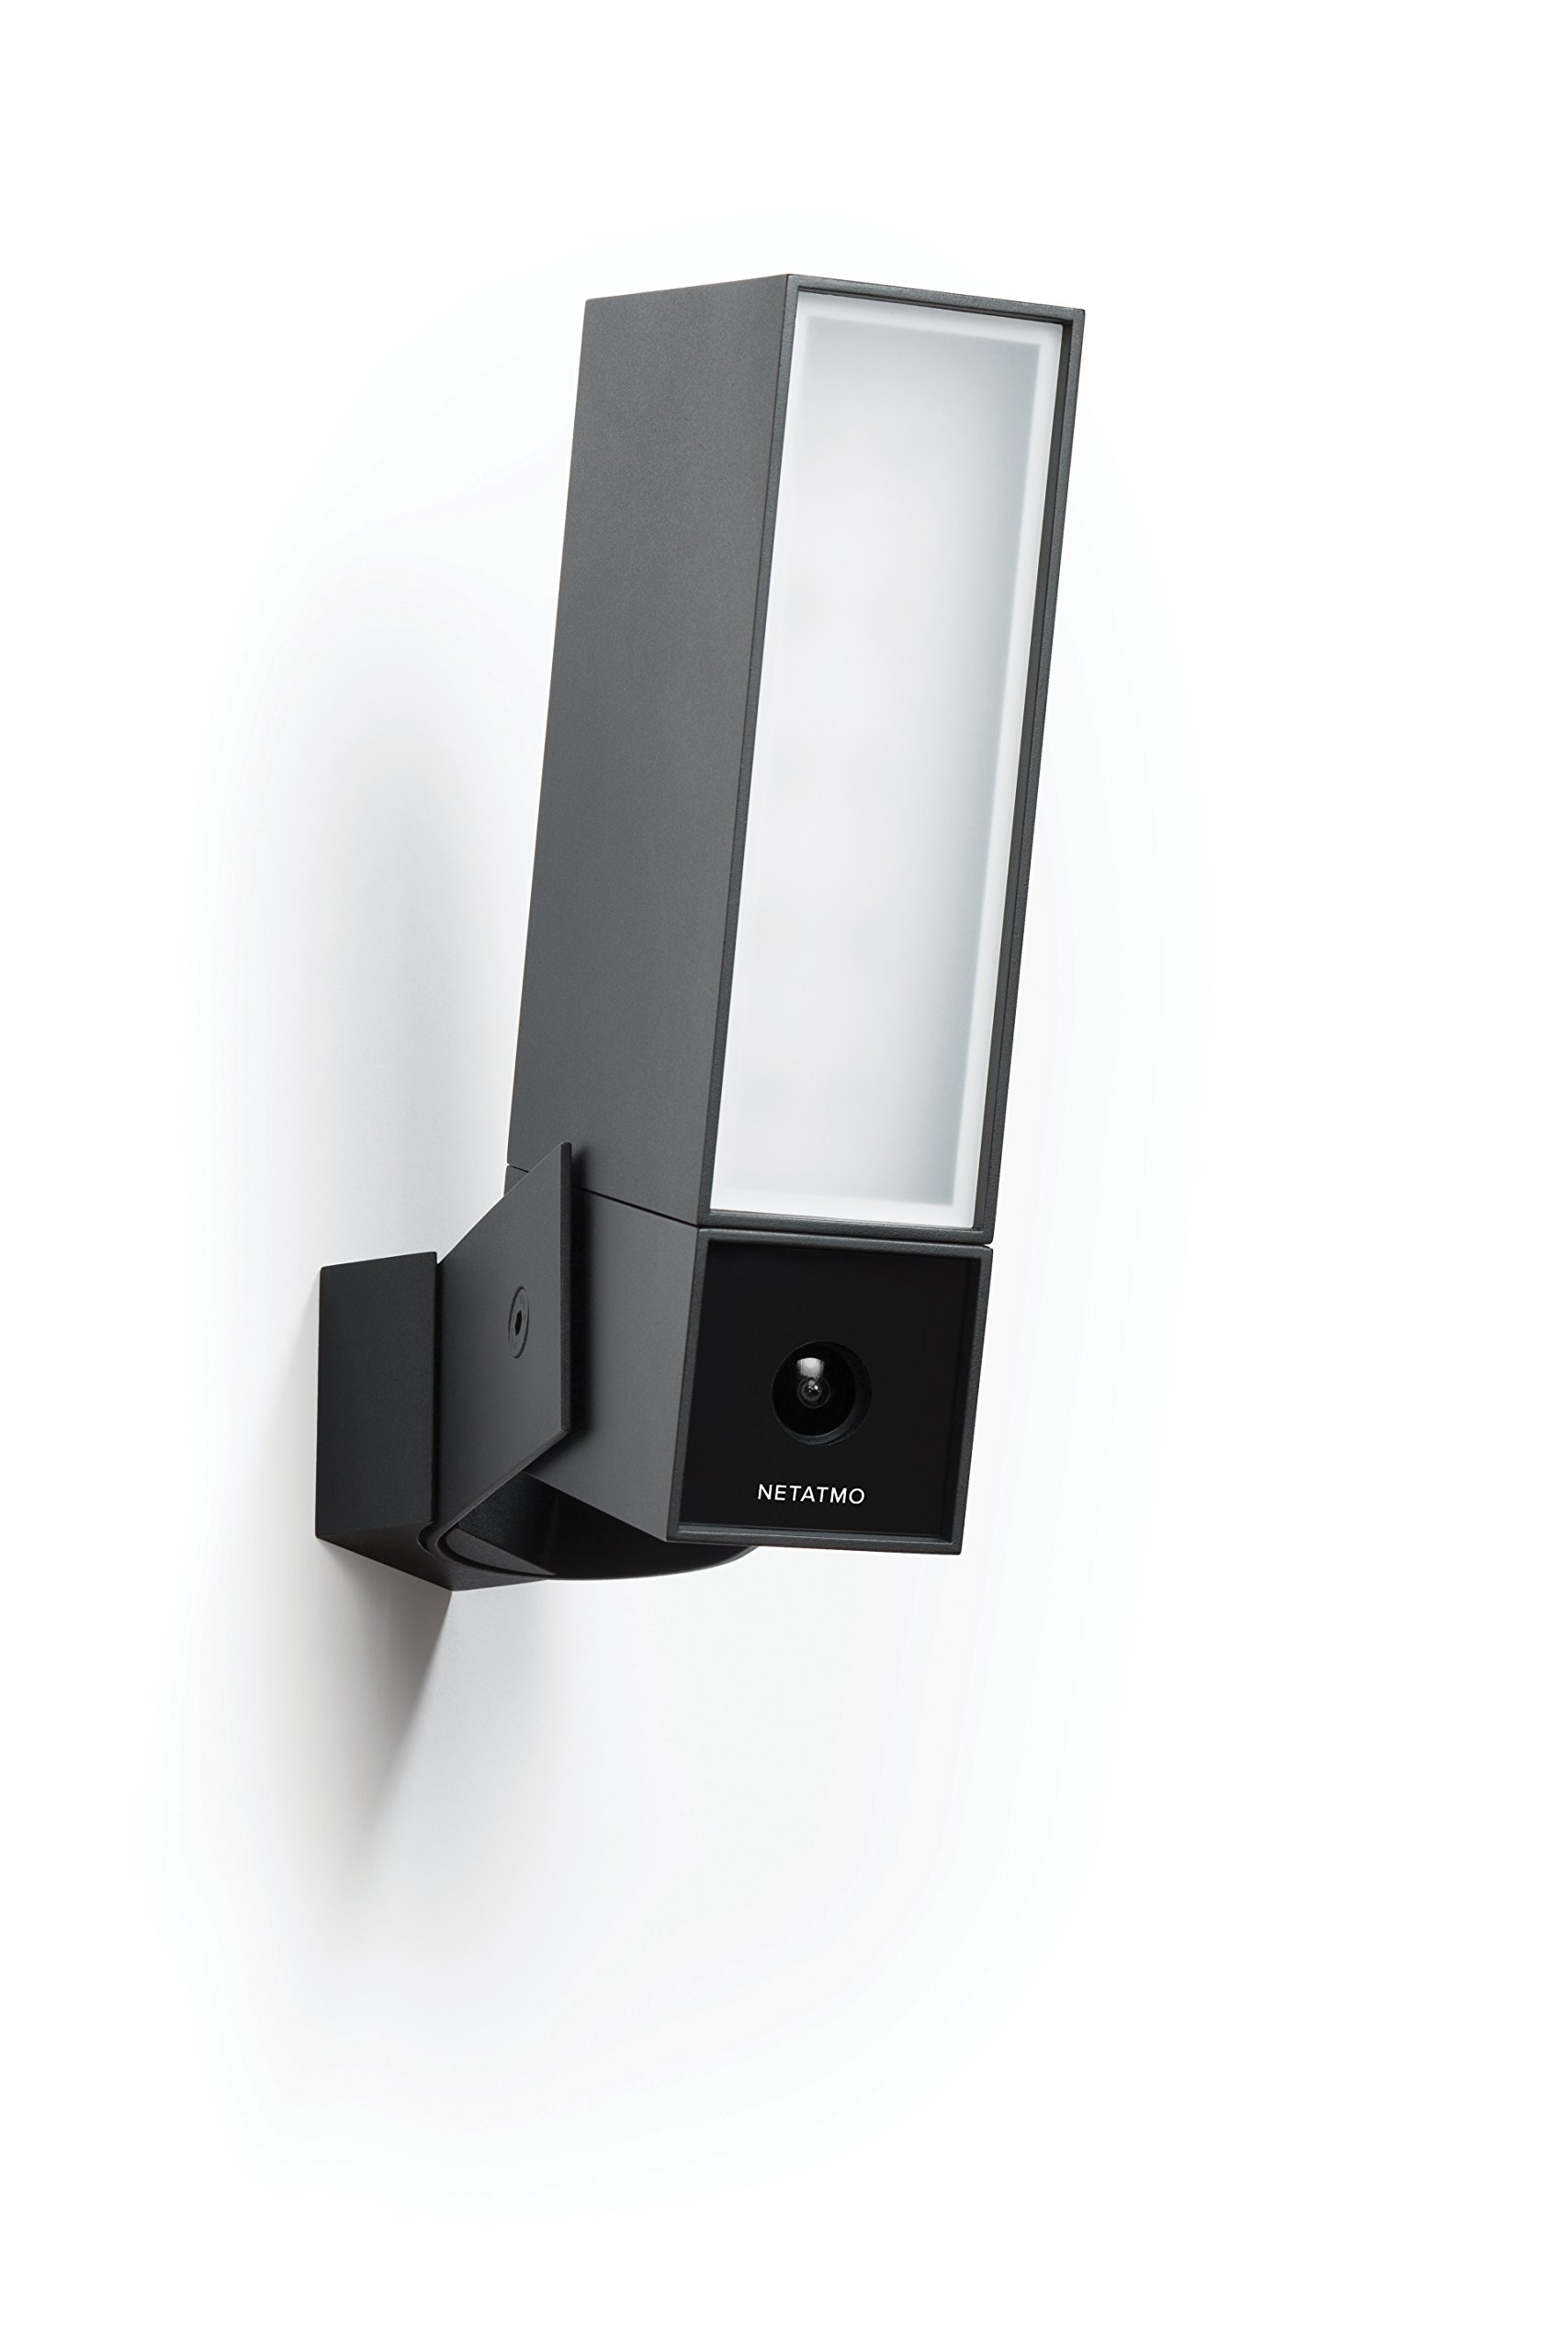 Netatmo Presence Outdoor Security Camera with Sensor Tags for Windows and Doors